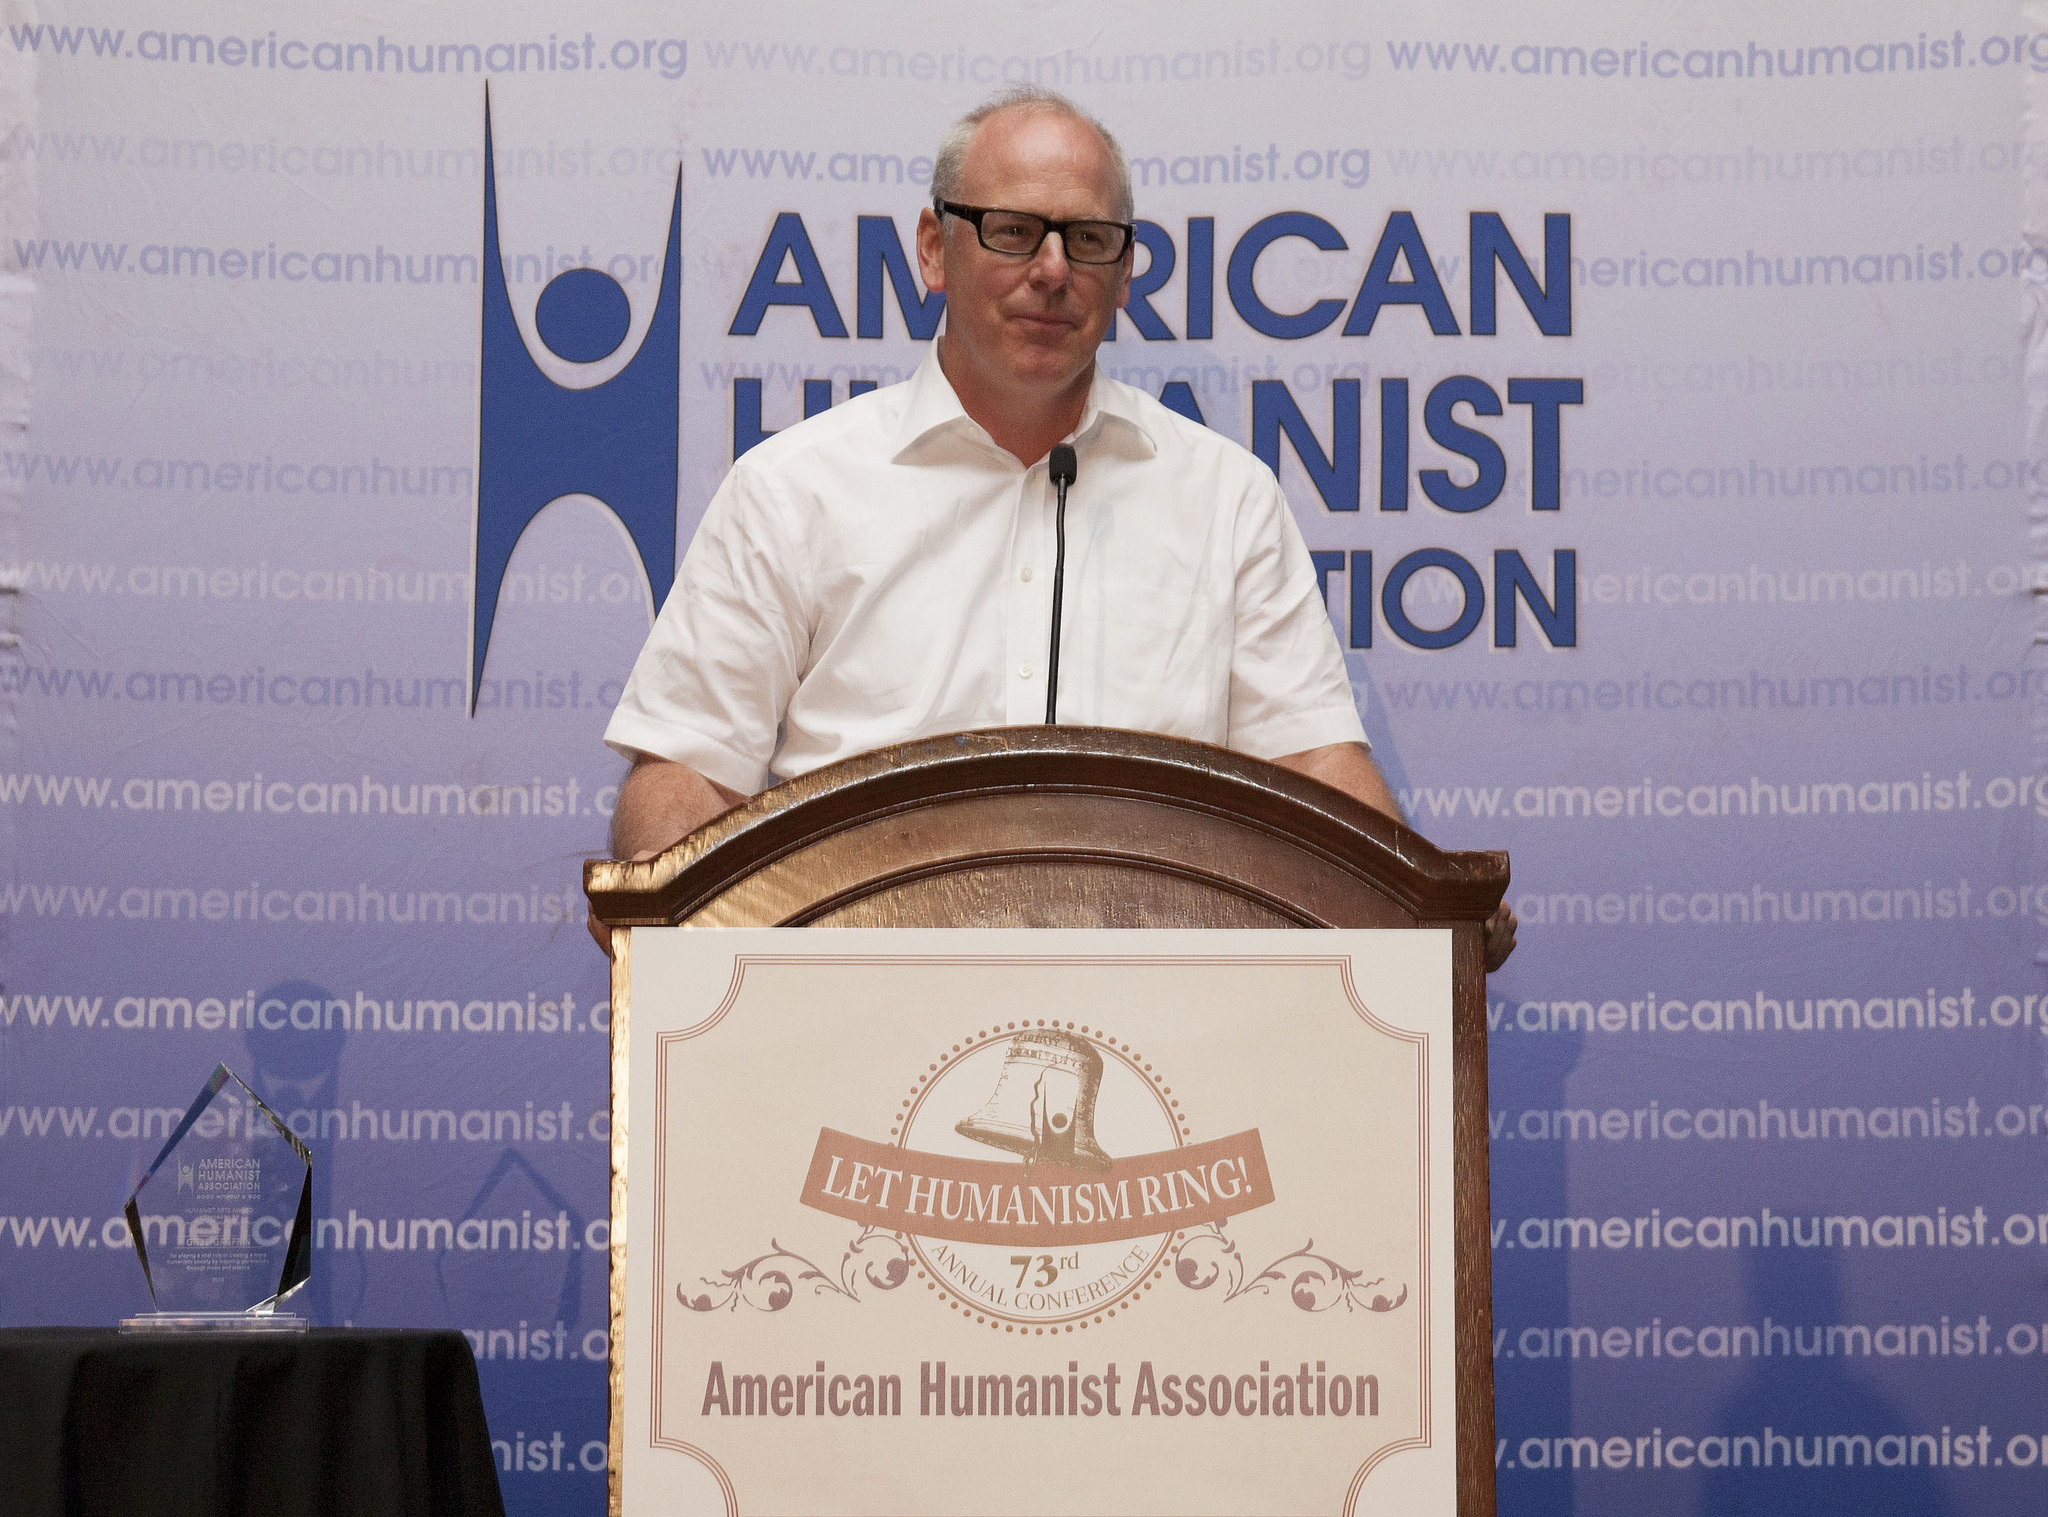 Greg Graffin, Humanist Arts Award Recipient